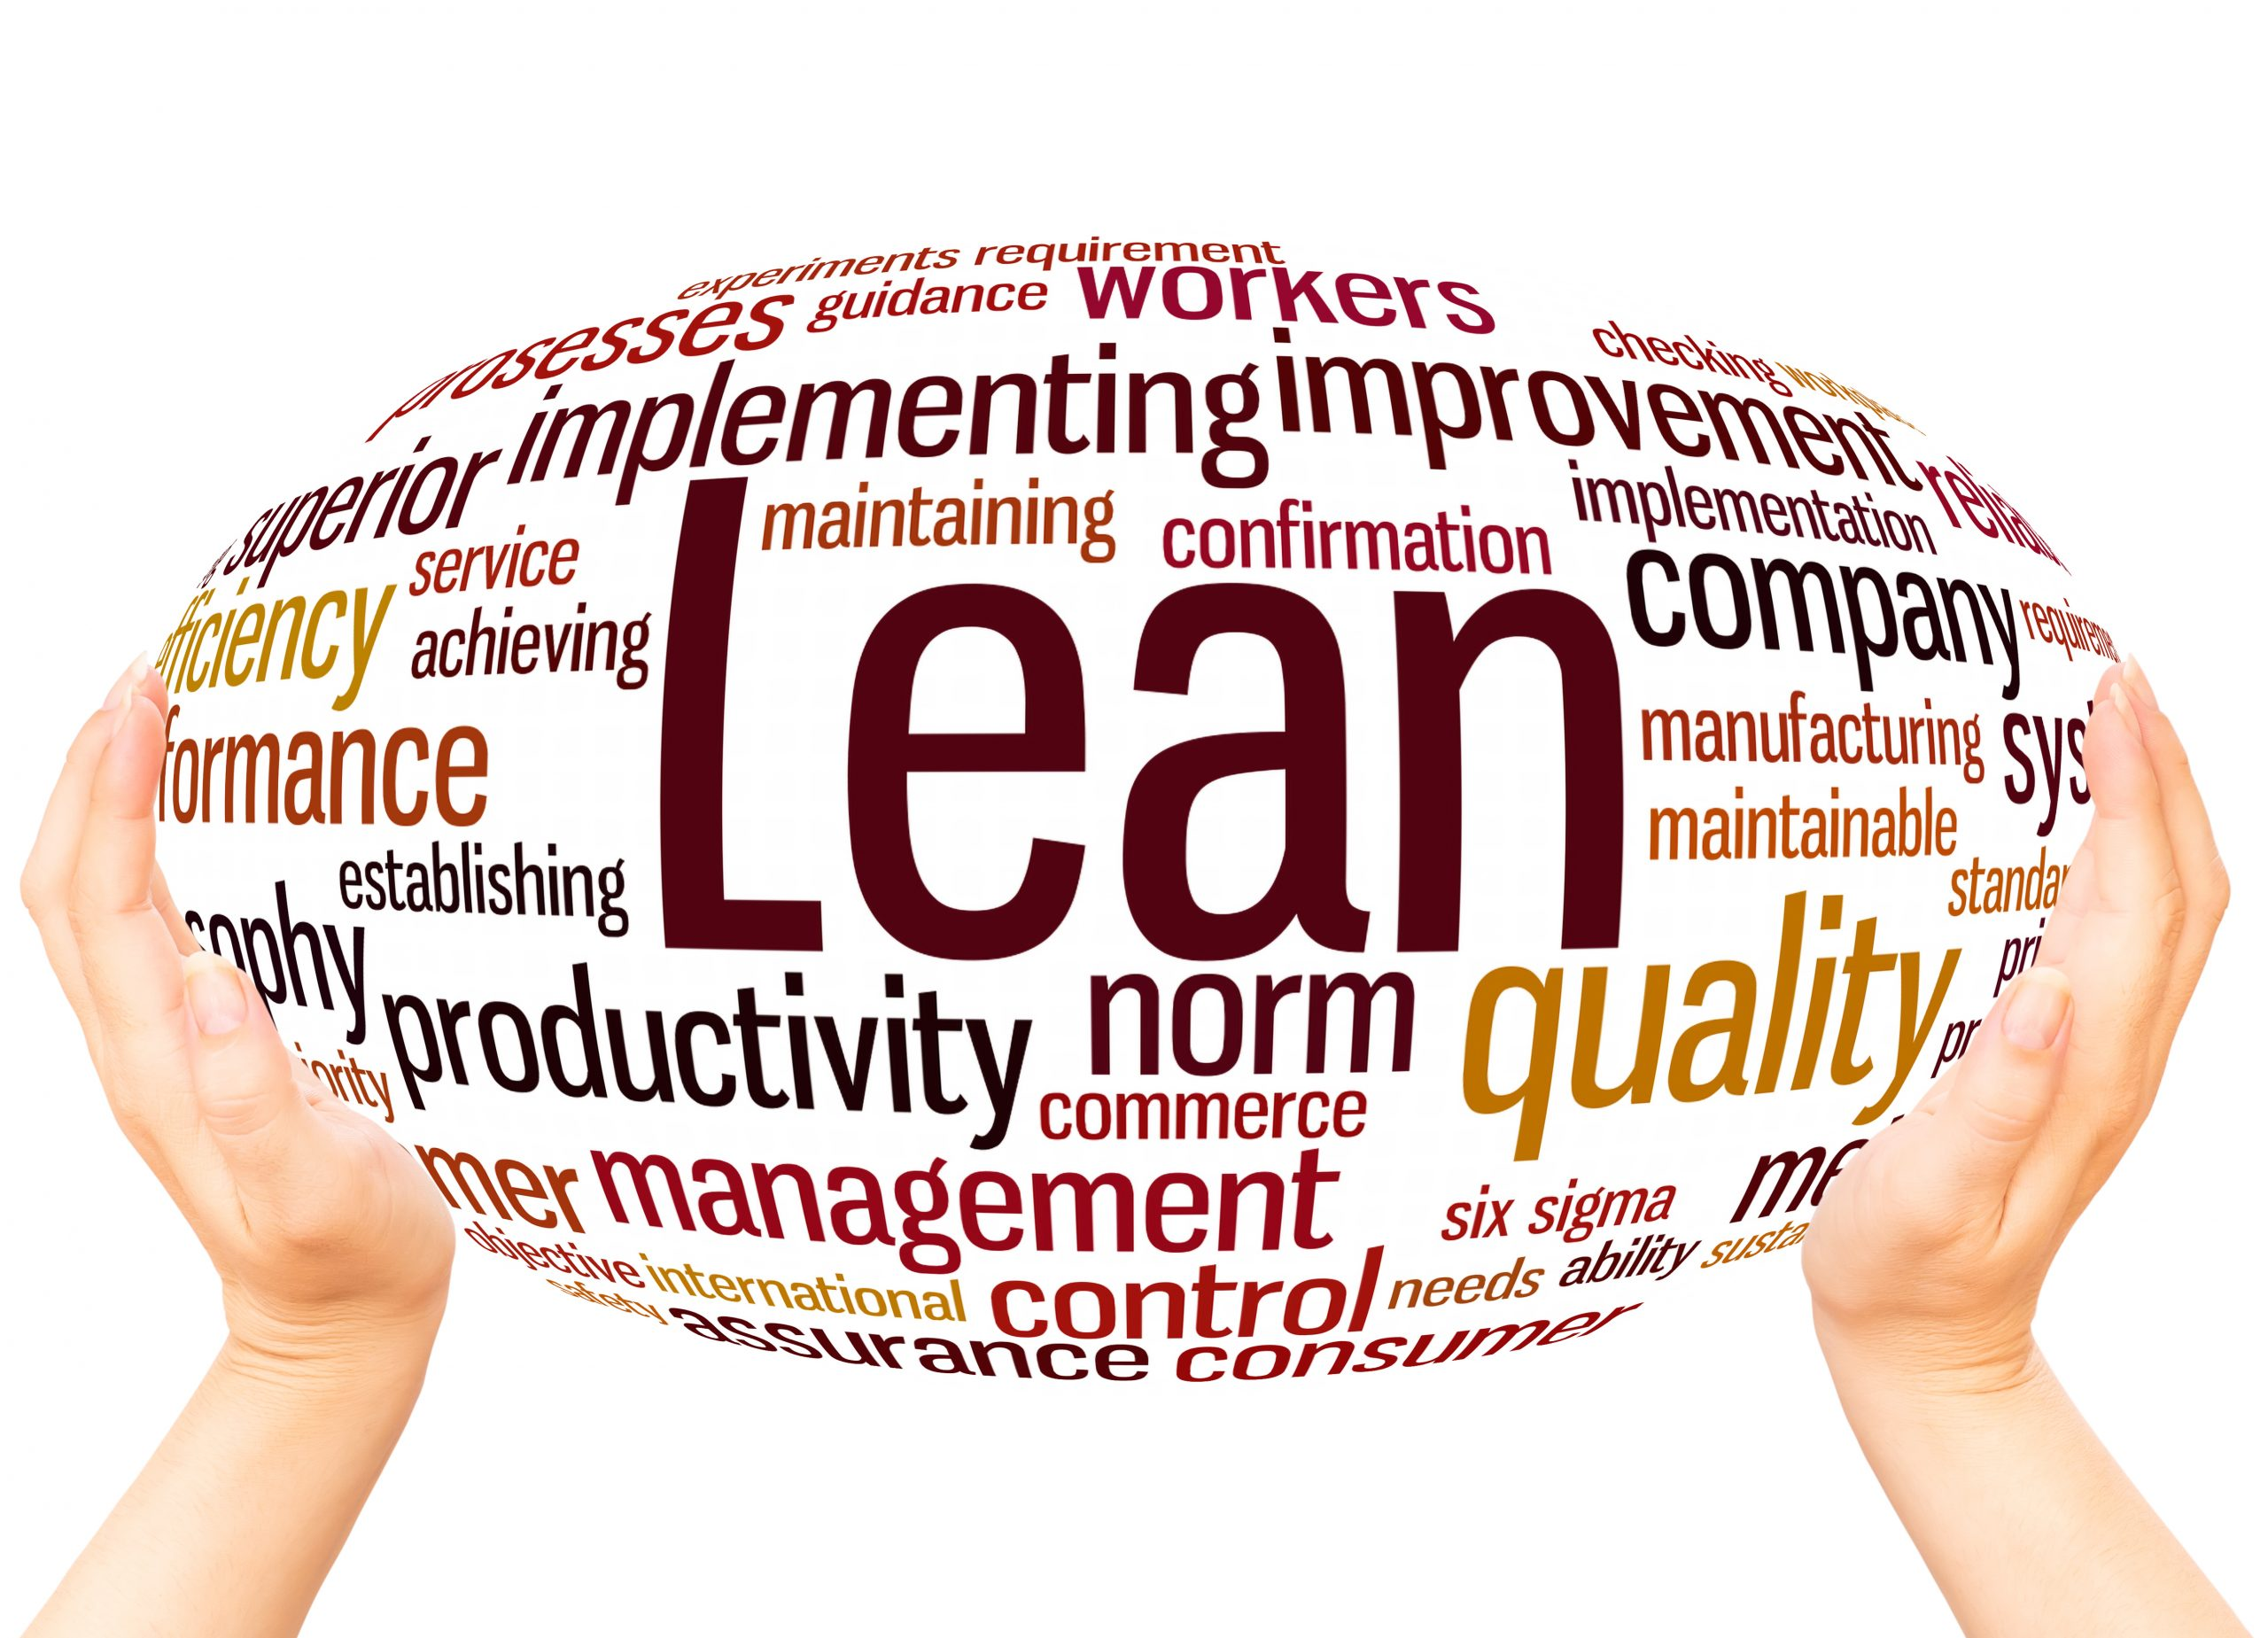 Lean six sigma improvements need improving